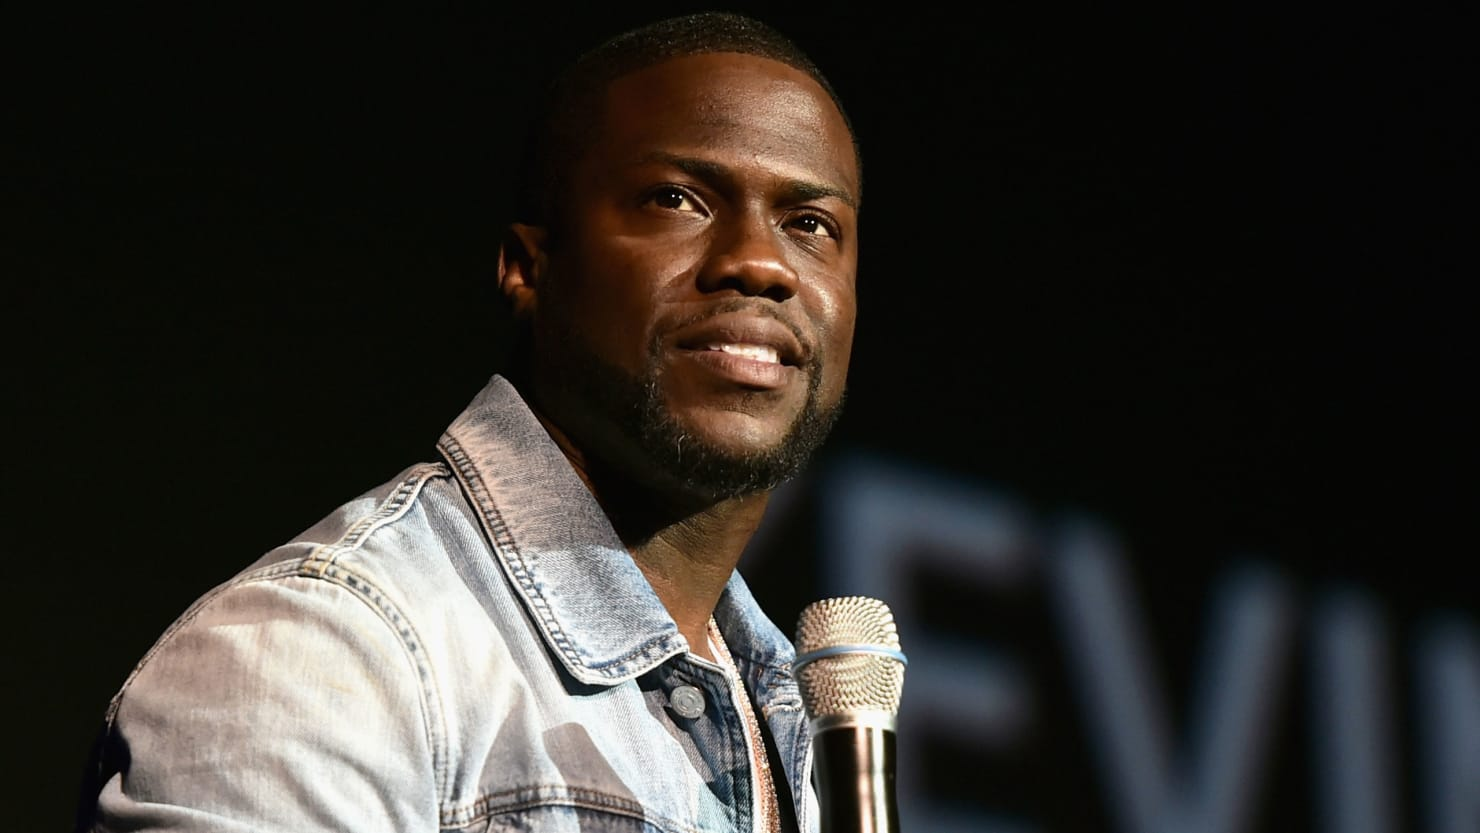 Kevin Hart Steps Down as Oscars Host Amid Homophobic Tweet Furor